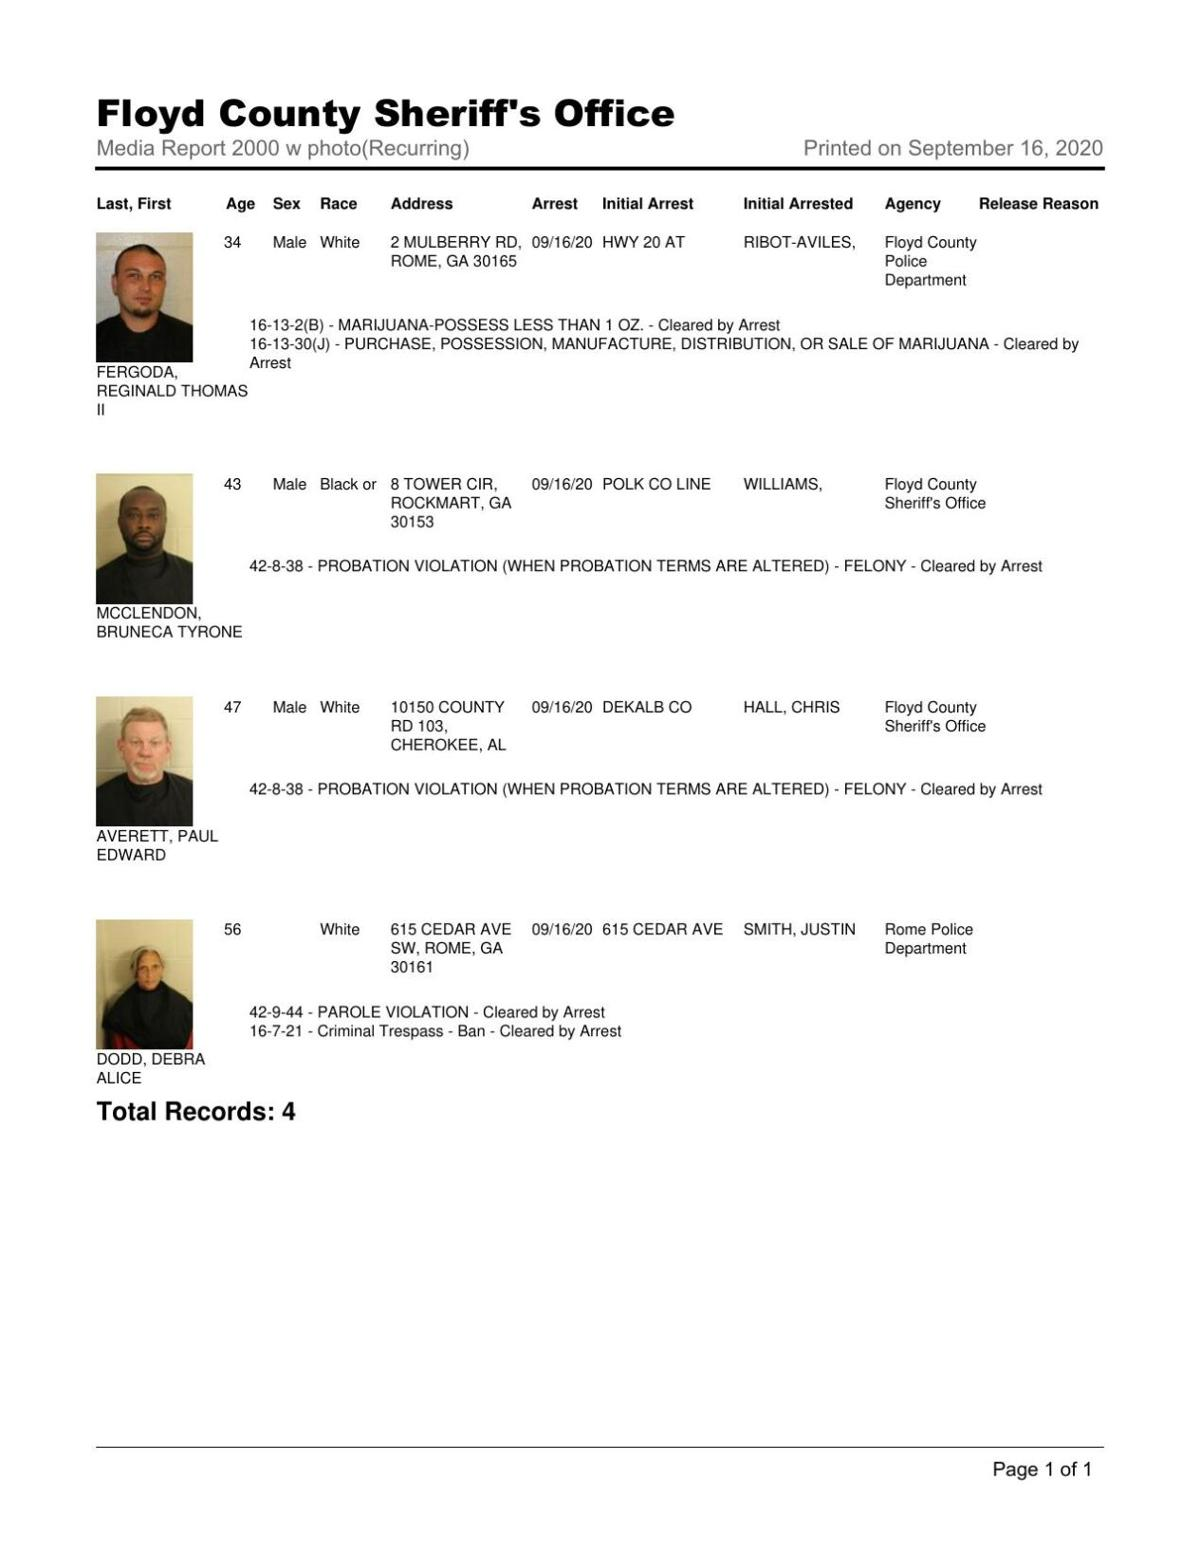 Floyd County Jail report for 8 p.m. Wednesday, Sept. 16